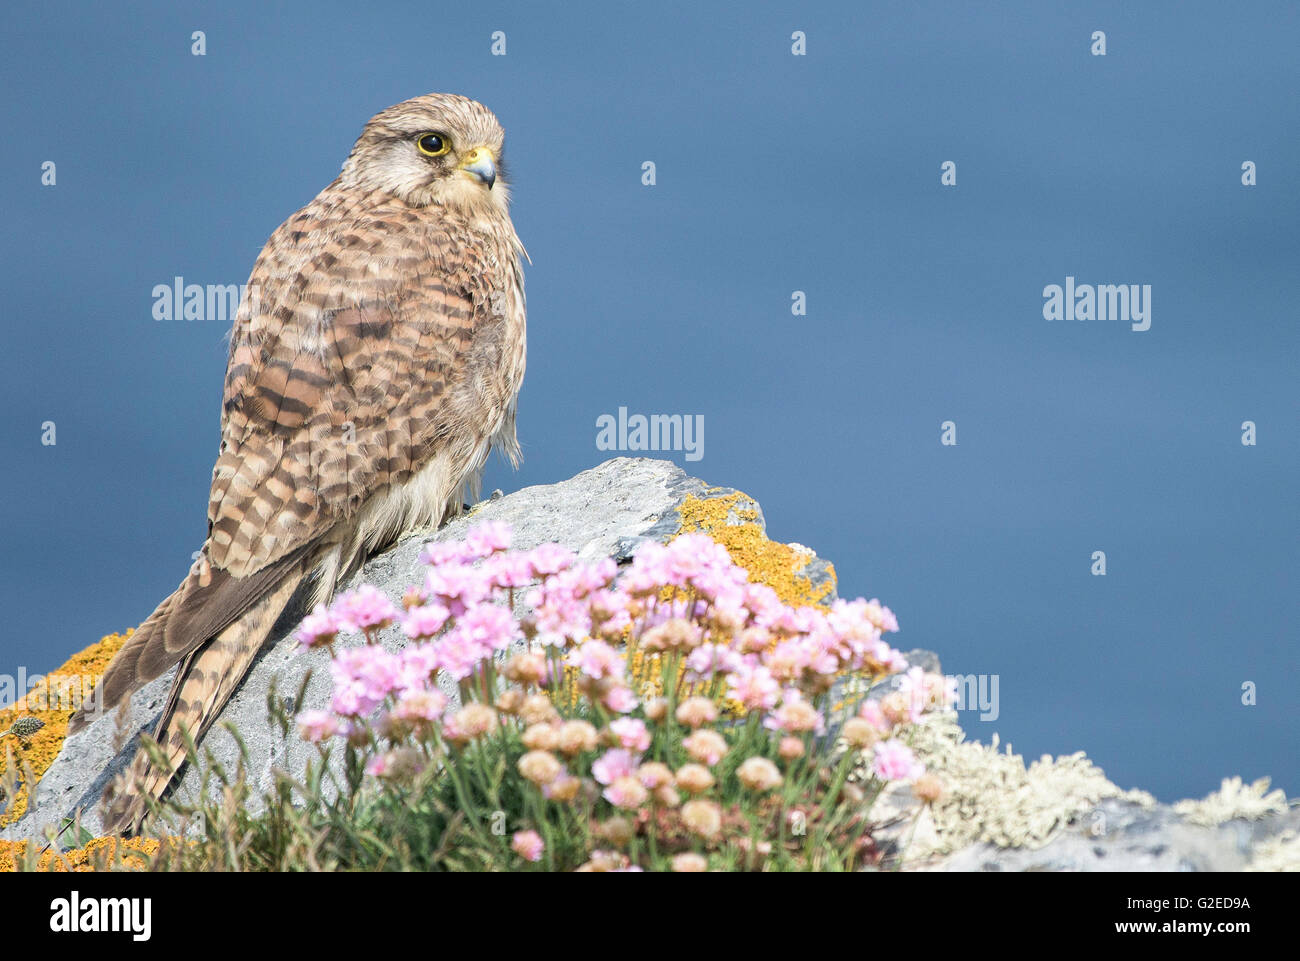 East Pentire, Newquay, Cornwall. 29th May, 2016.  A handsome young Kestrel takes a break from hunting and perches - Stock Image